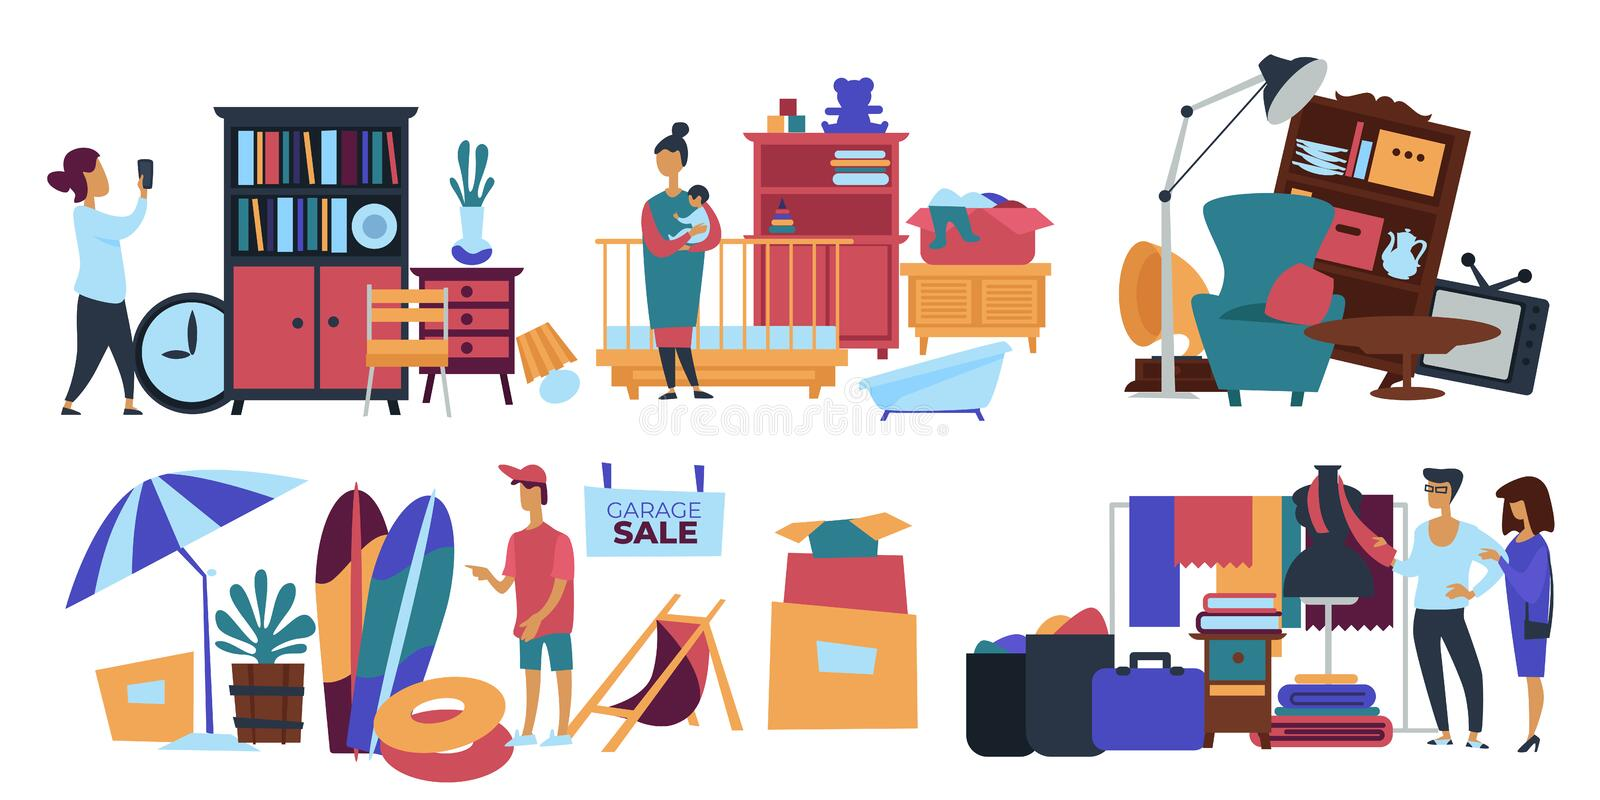 Garage sale person seller selling old stuff at home royalty free illustration